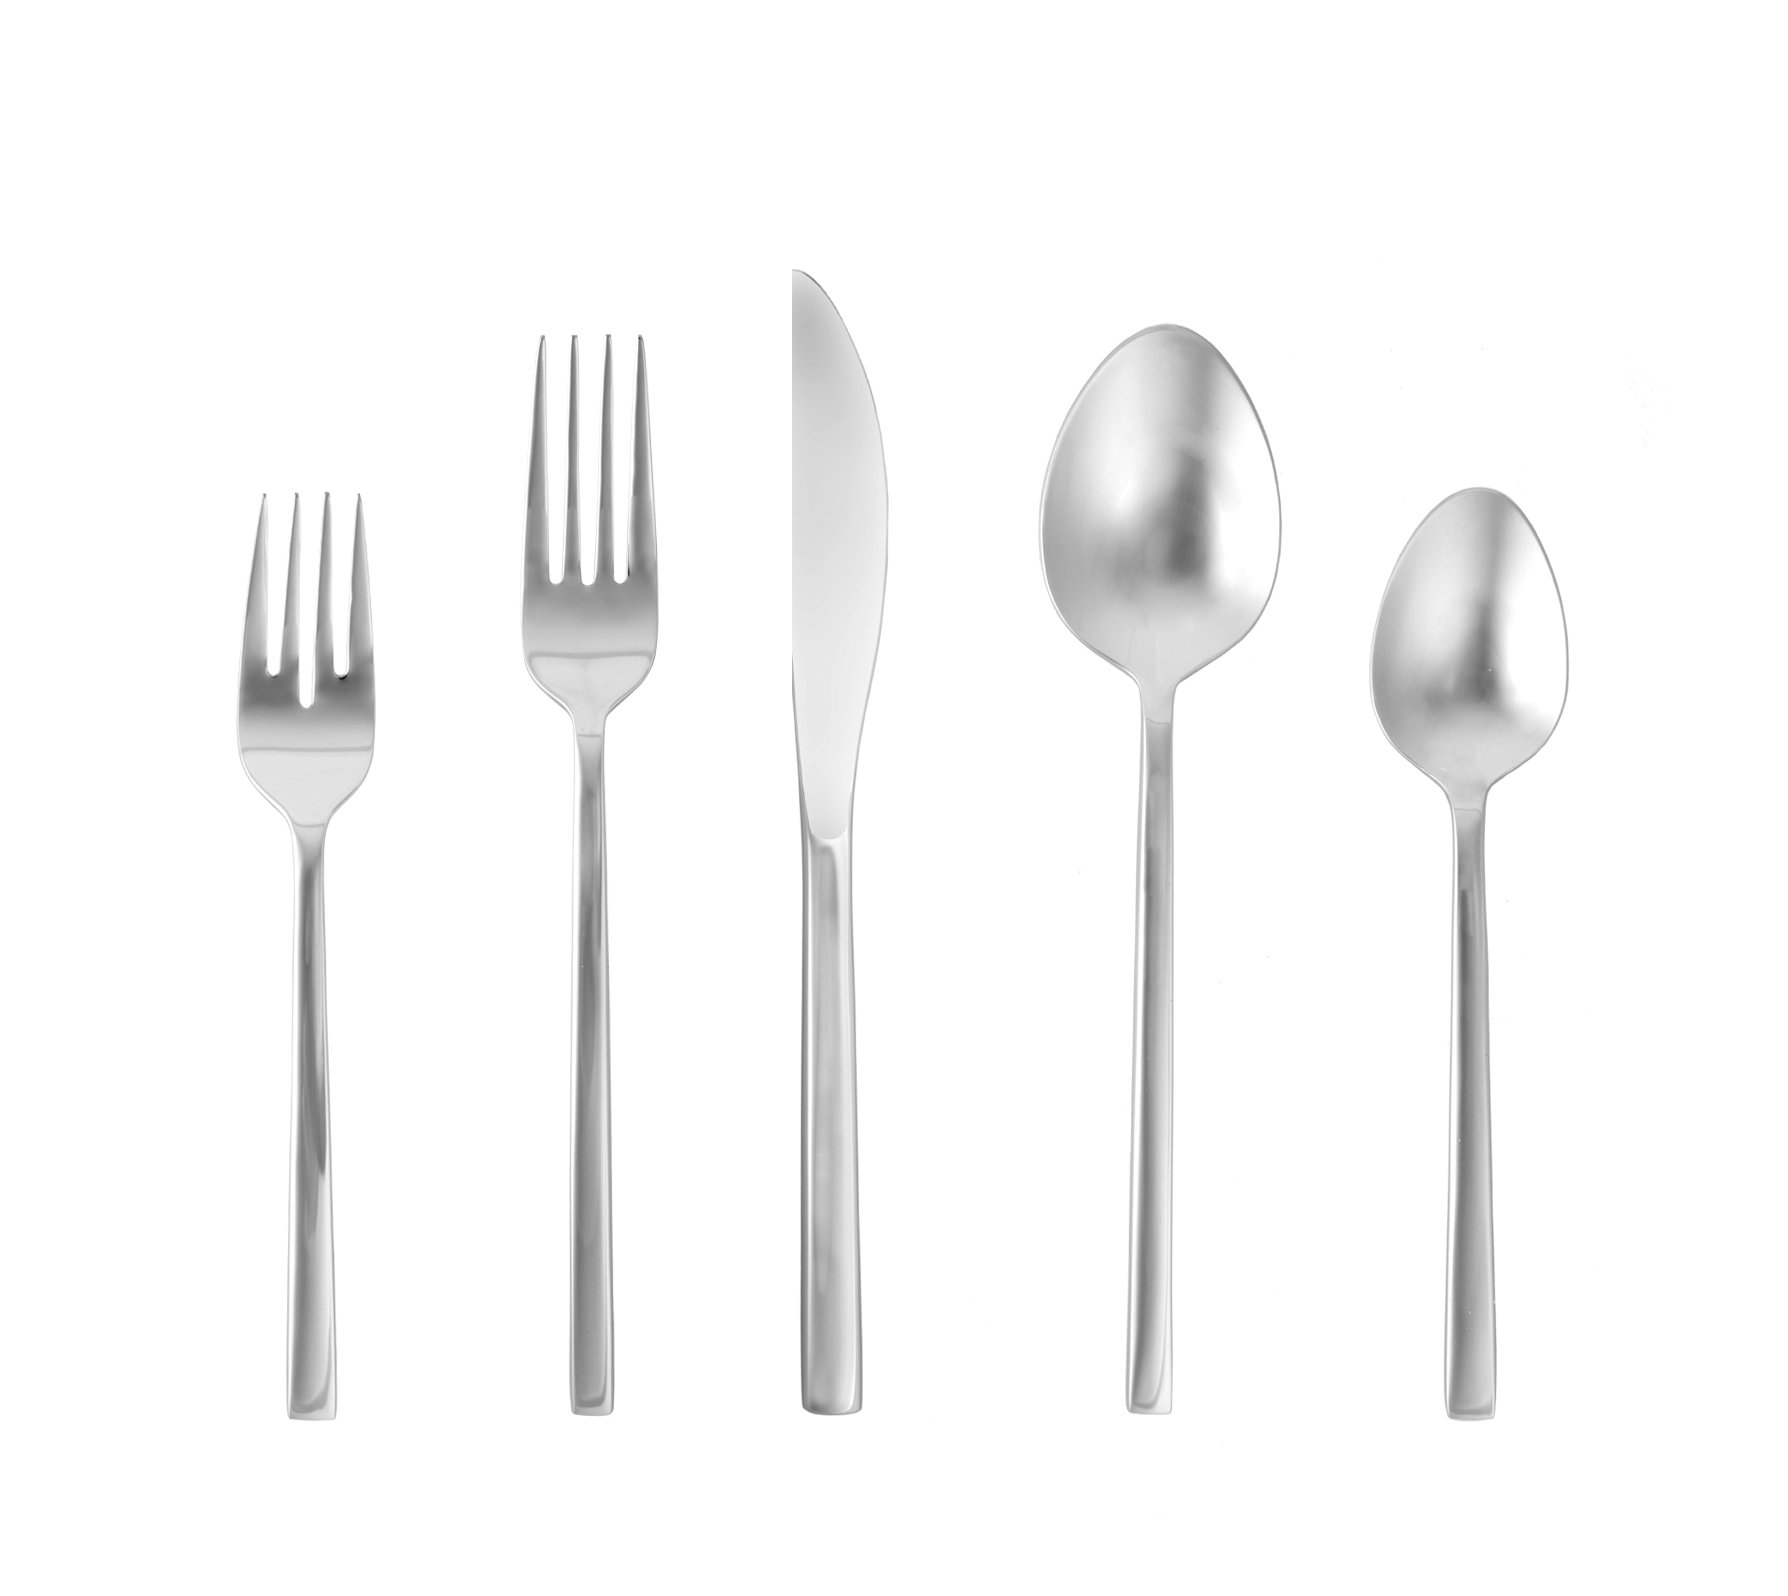 Fortessa Arezzo 18/10 Stainless Steel Flatware 5 Piece Place Setting - 5 piece place setting Heavy gauge 18/10 stainless steel construction Comfortable and balanced - kitchen-tabletop, kitchen-dining-room, flatware - 61ca2Xds6SL -